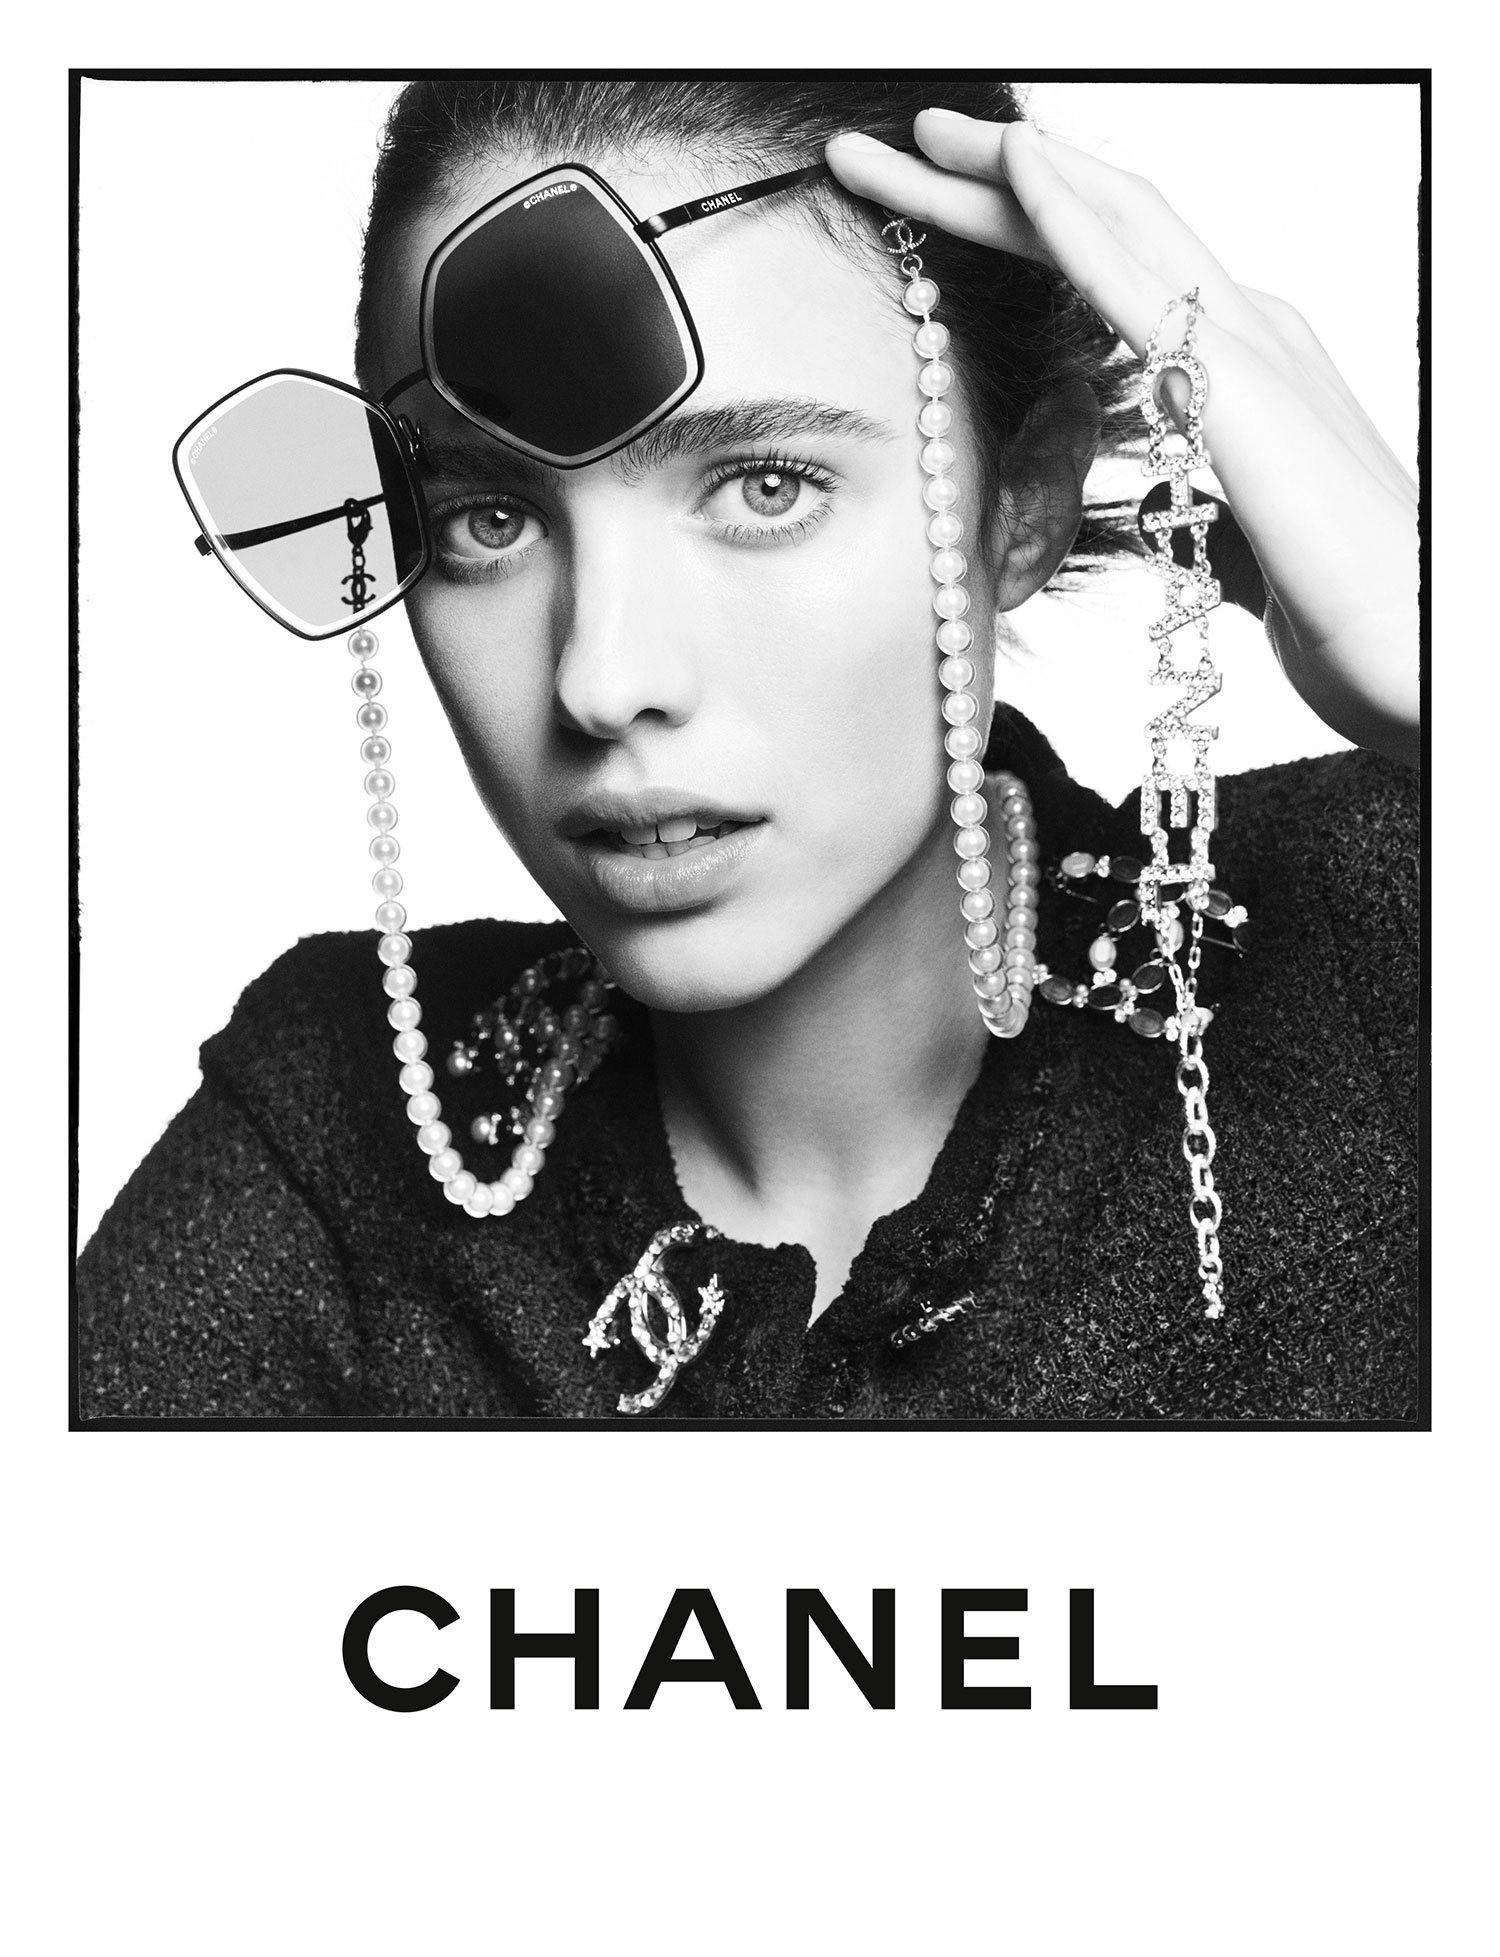 Chanel occhiali da sole primavera estate 2020